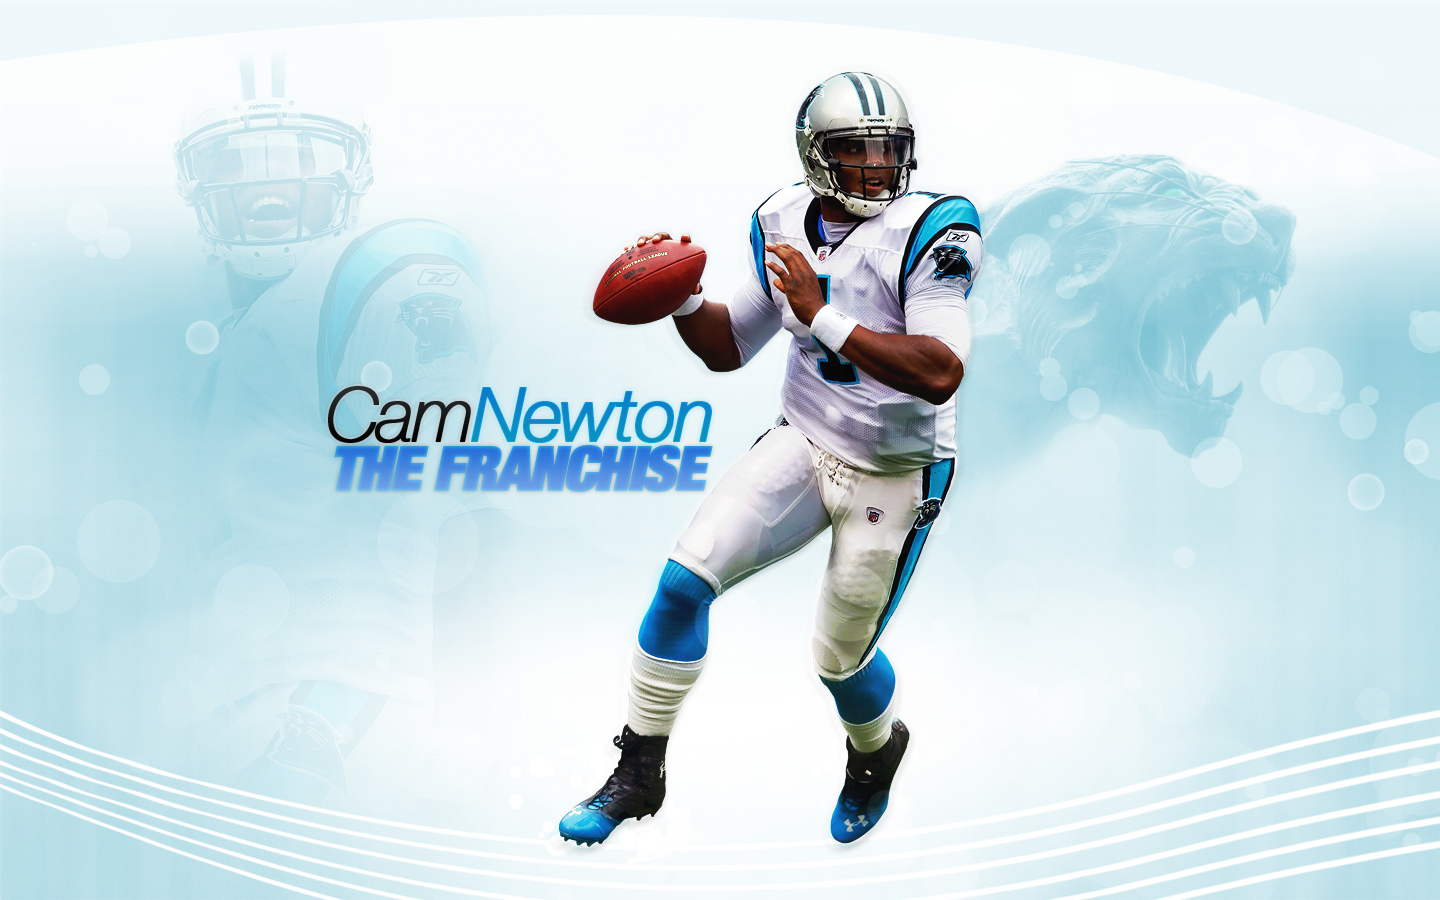 Cam Newton Panthers Wallpaper Cam newton   the franchise 1440x900